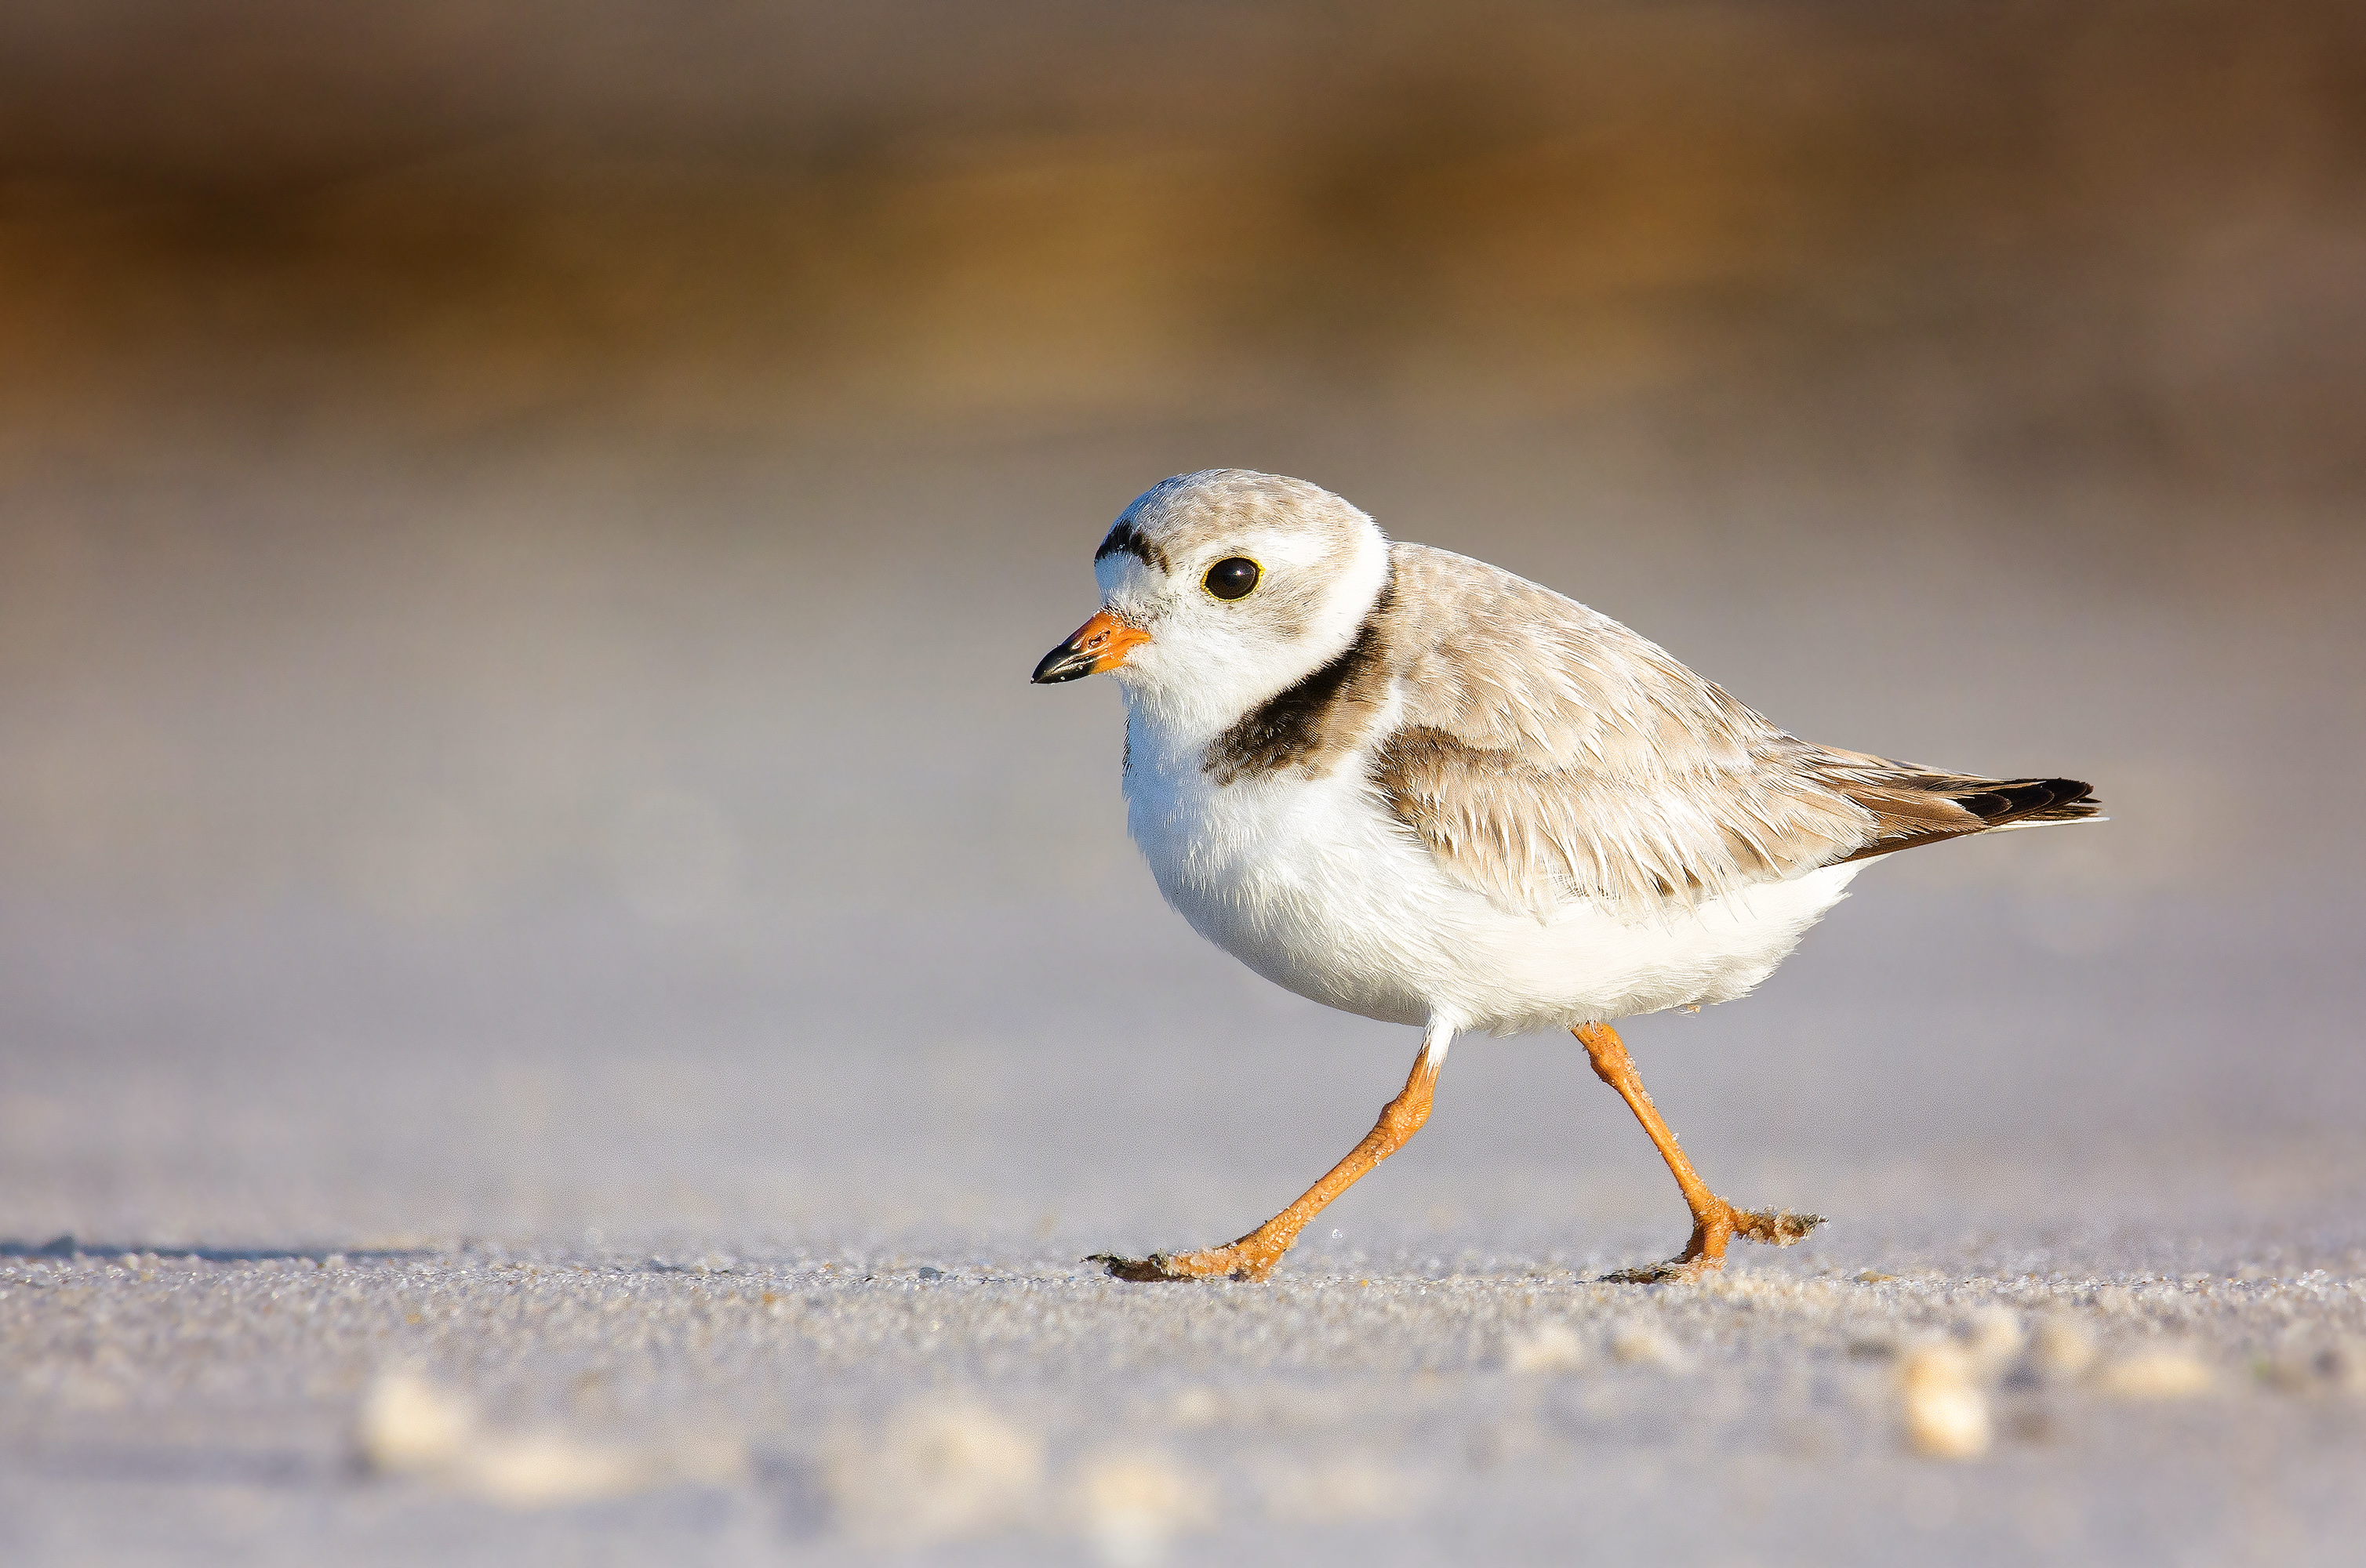 adult piping plover walking in sand